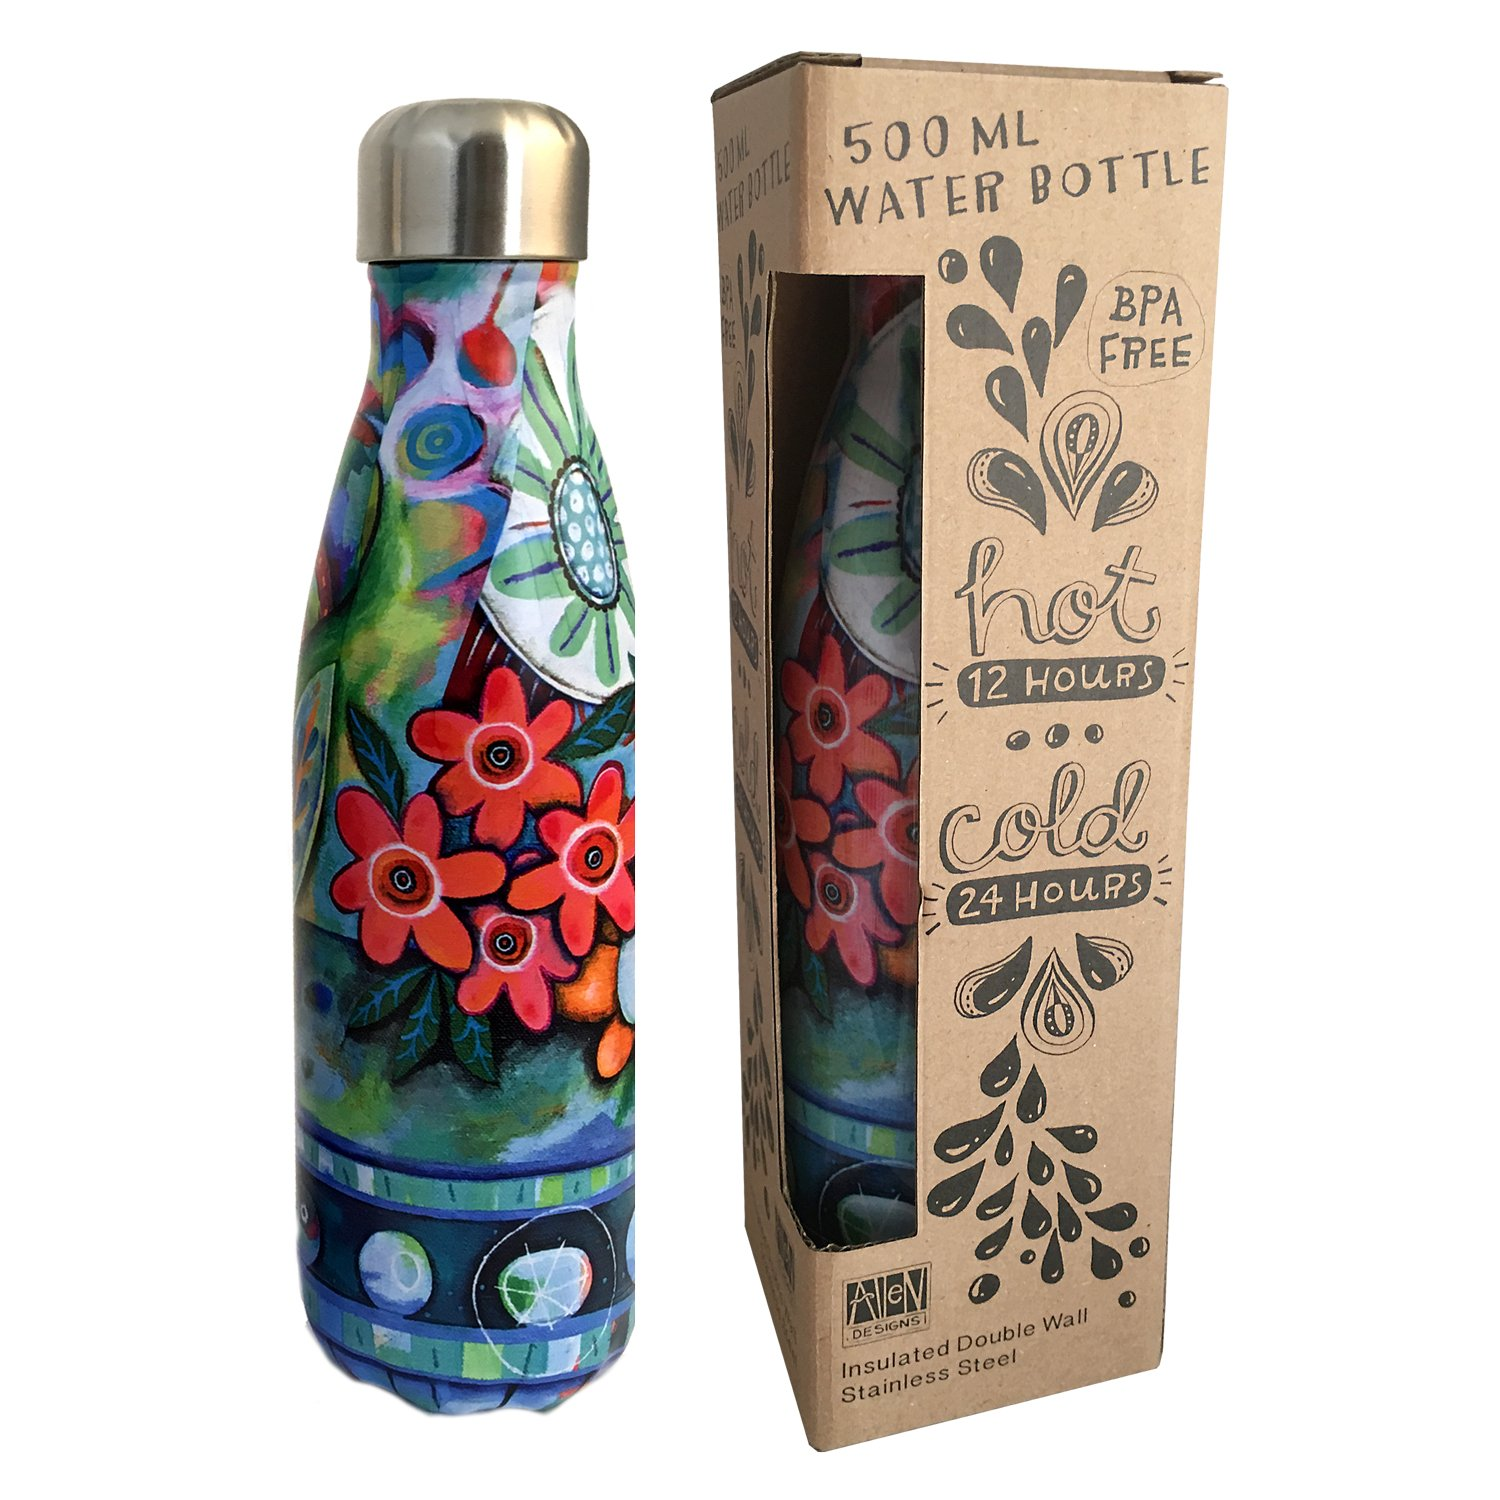 Insulated 500 ml water bottle - Flower Blast by Allen Designs